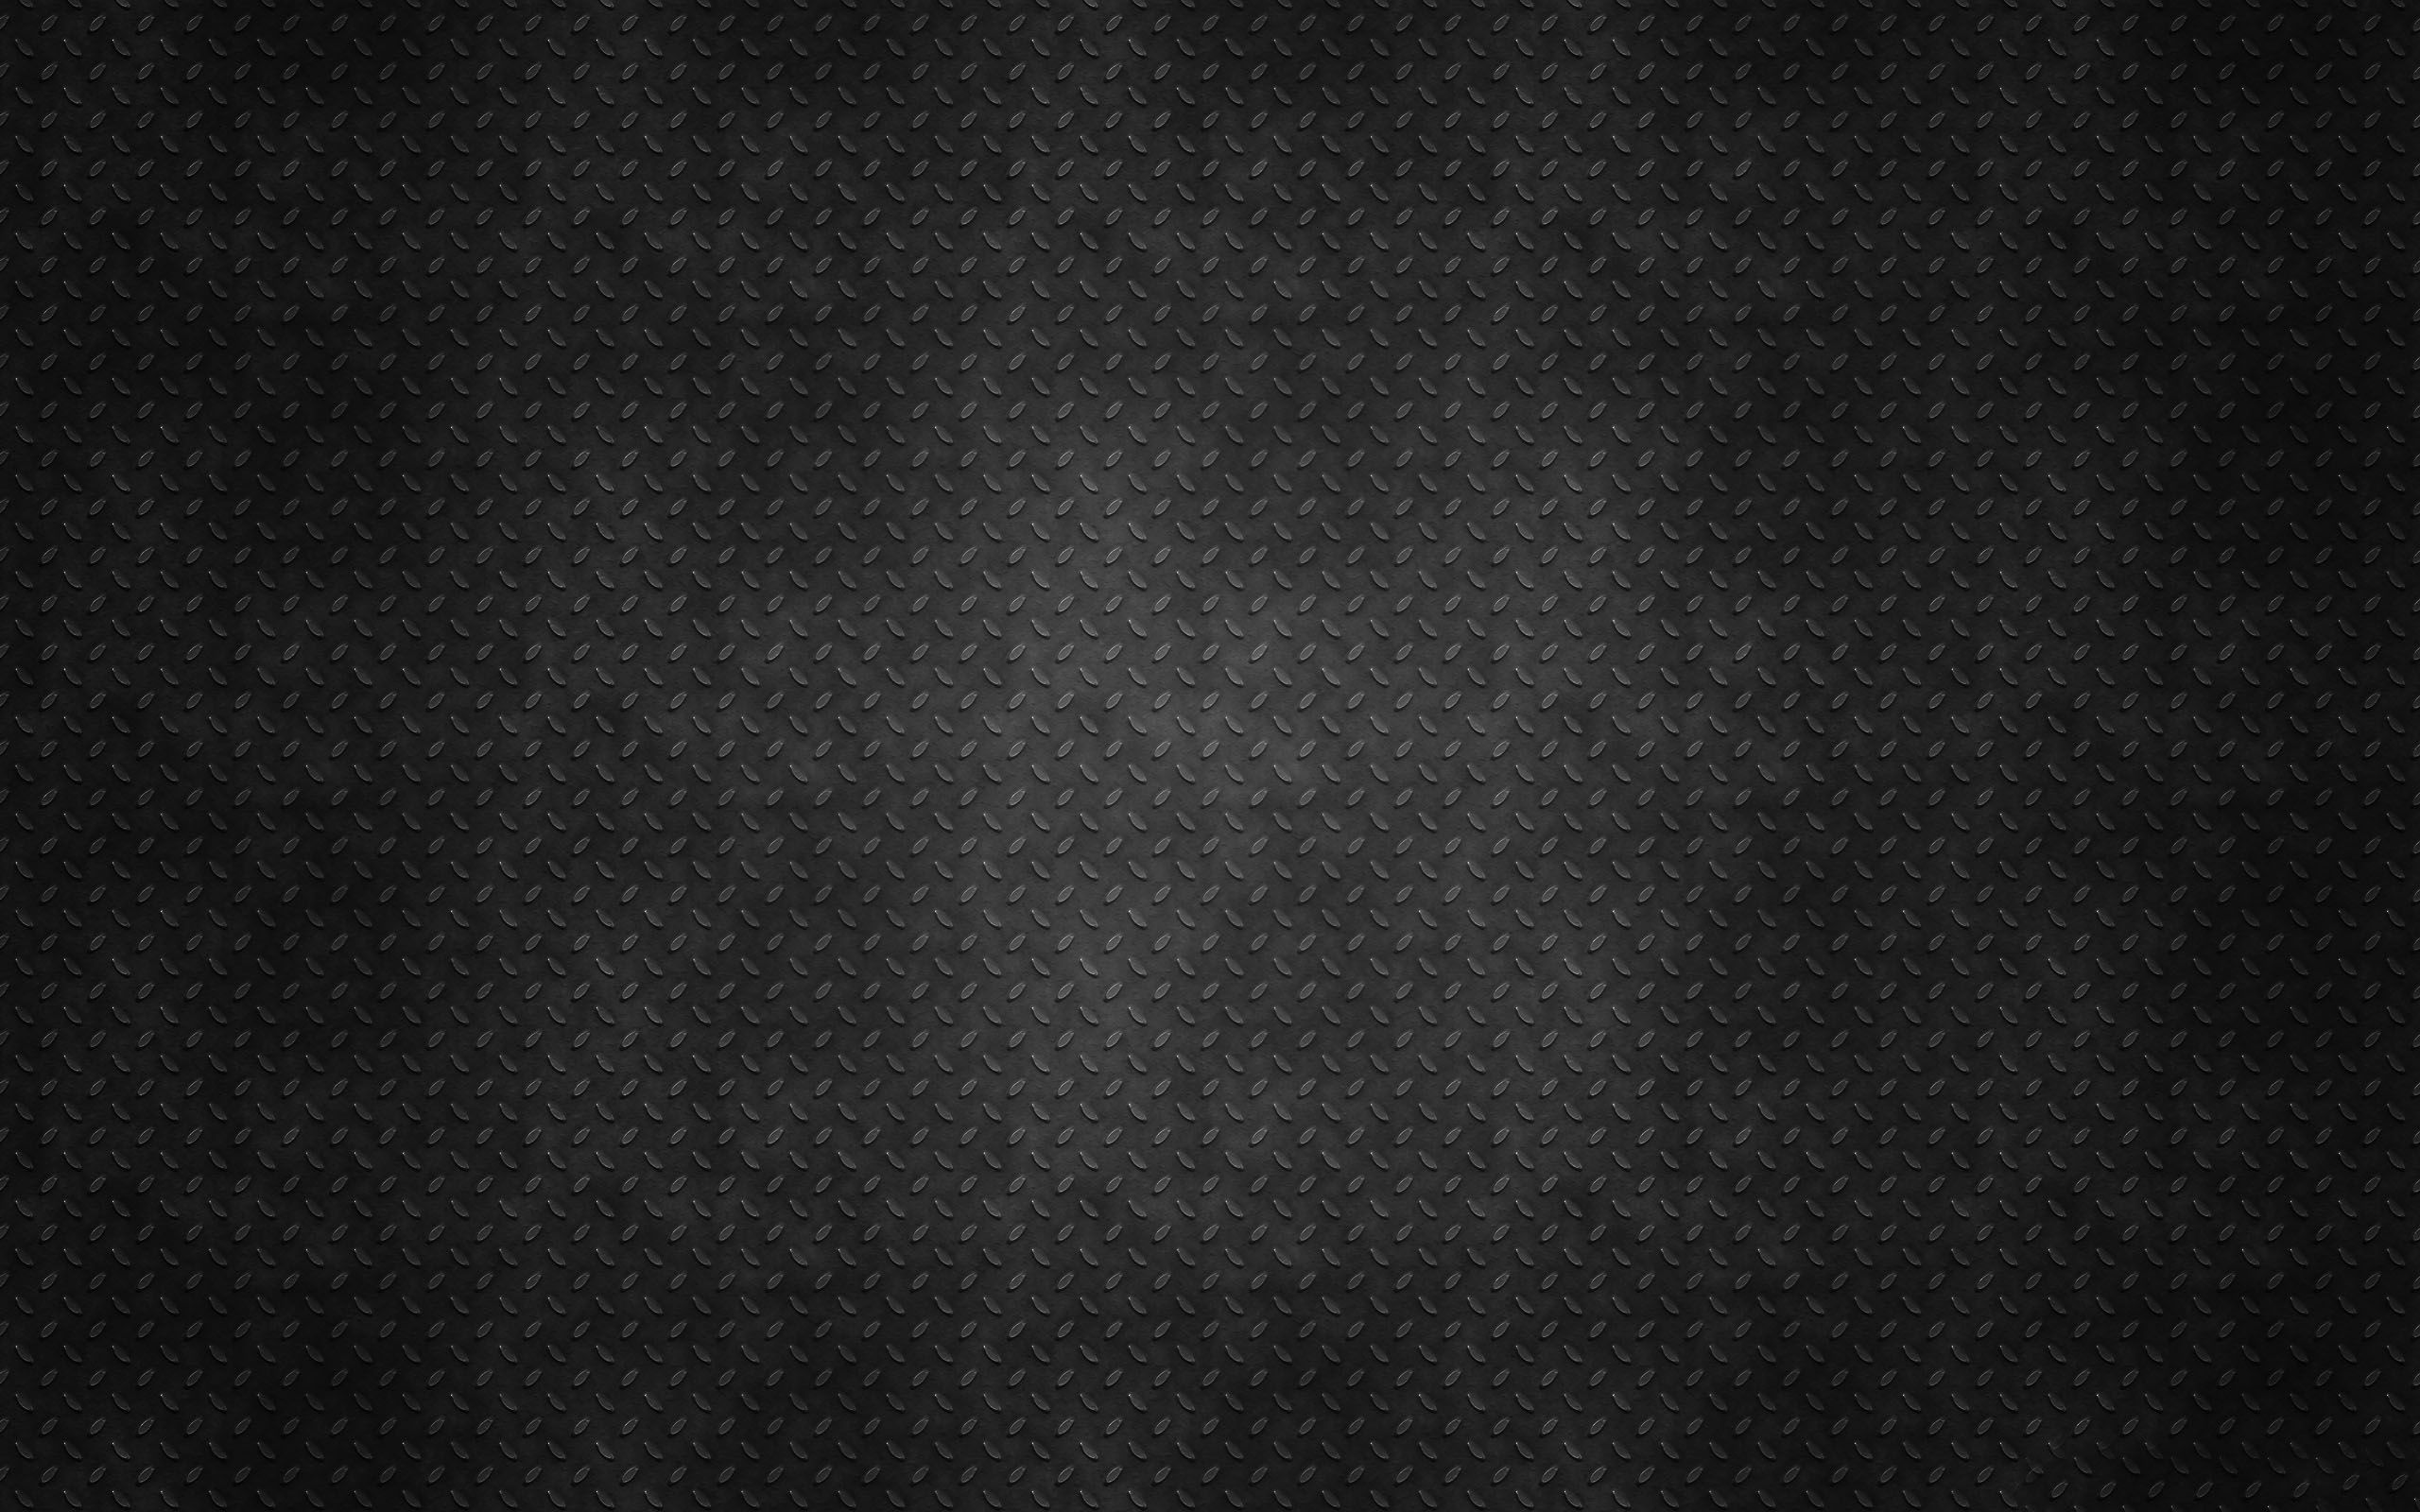 Black Hd Background Background Wallpapers Abstract Photo Cool Black Background Waring Music